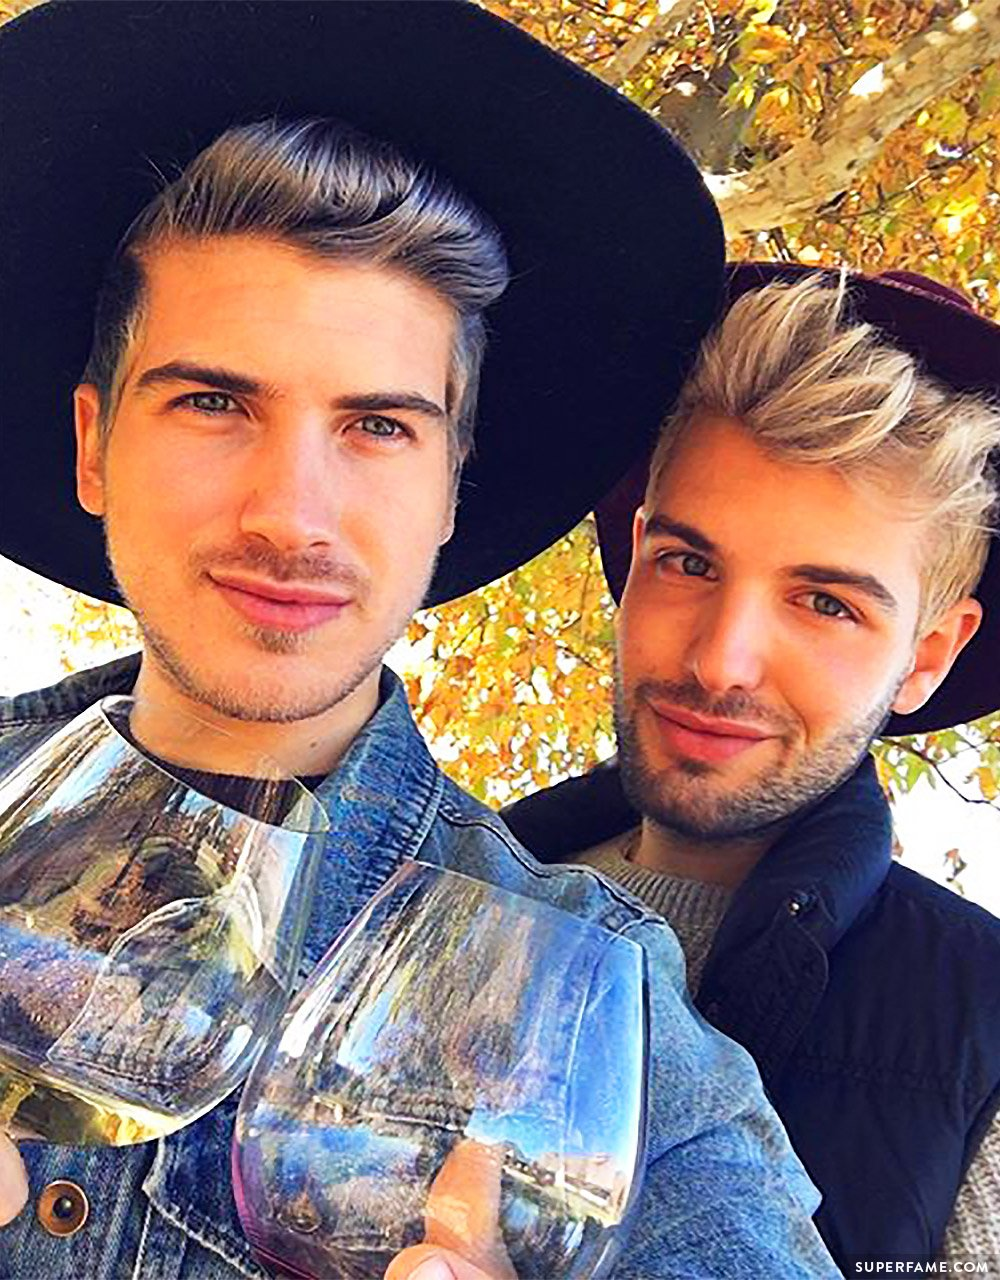 joey and daniel dating